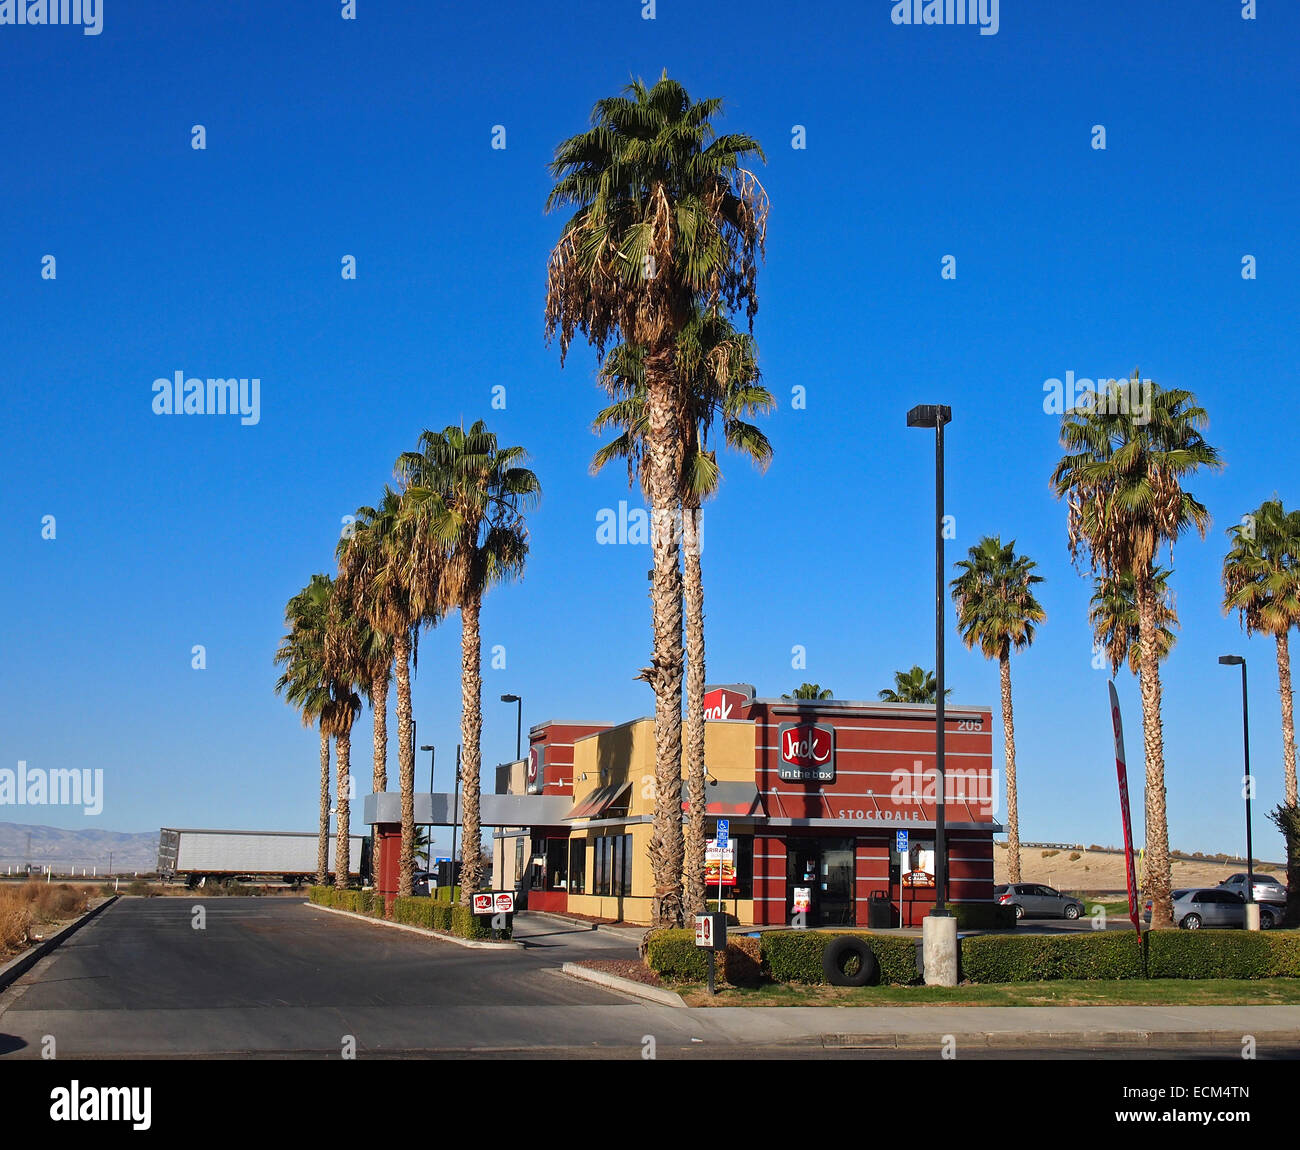 Jack in the Box restaurant, Vallée de San Joaquin, en Californie, USA Photo Stock